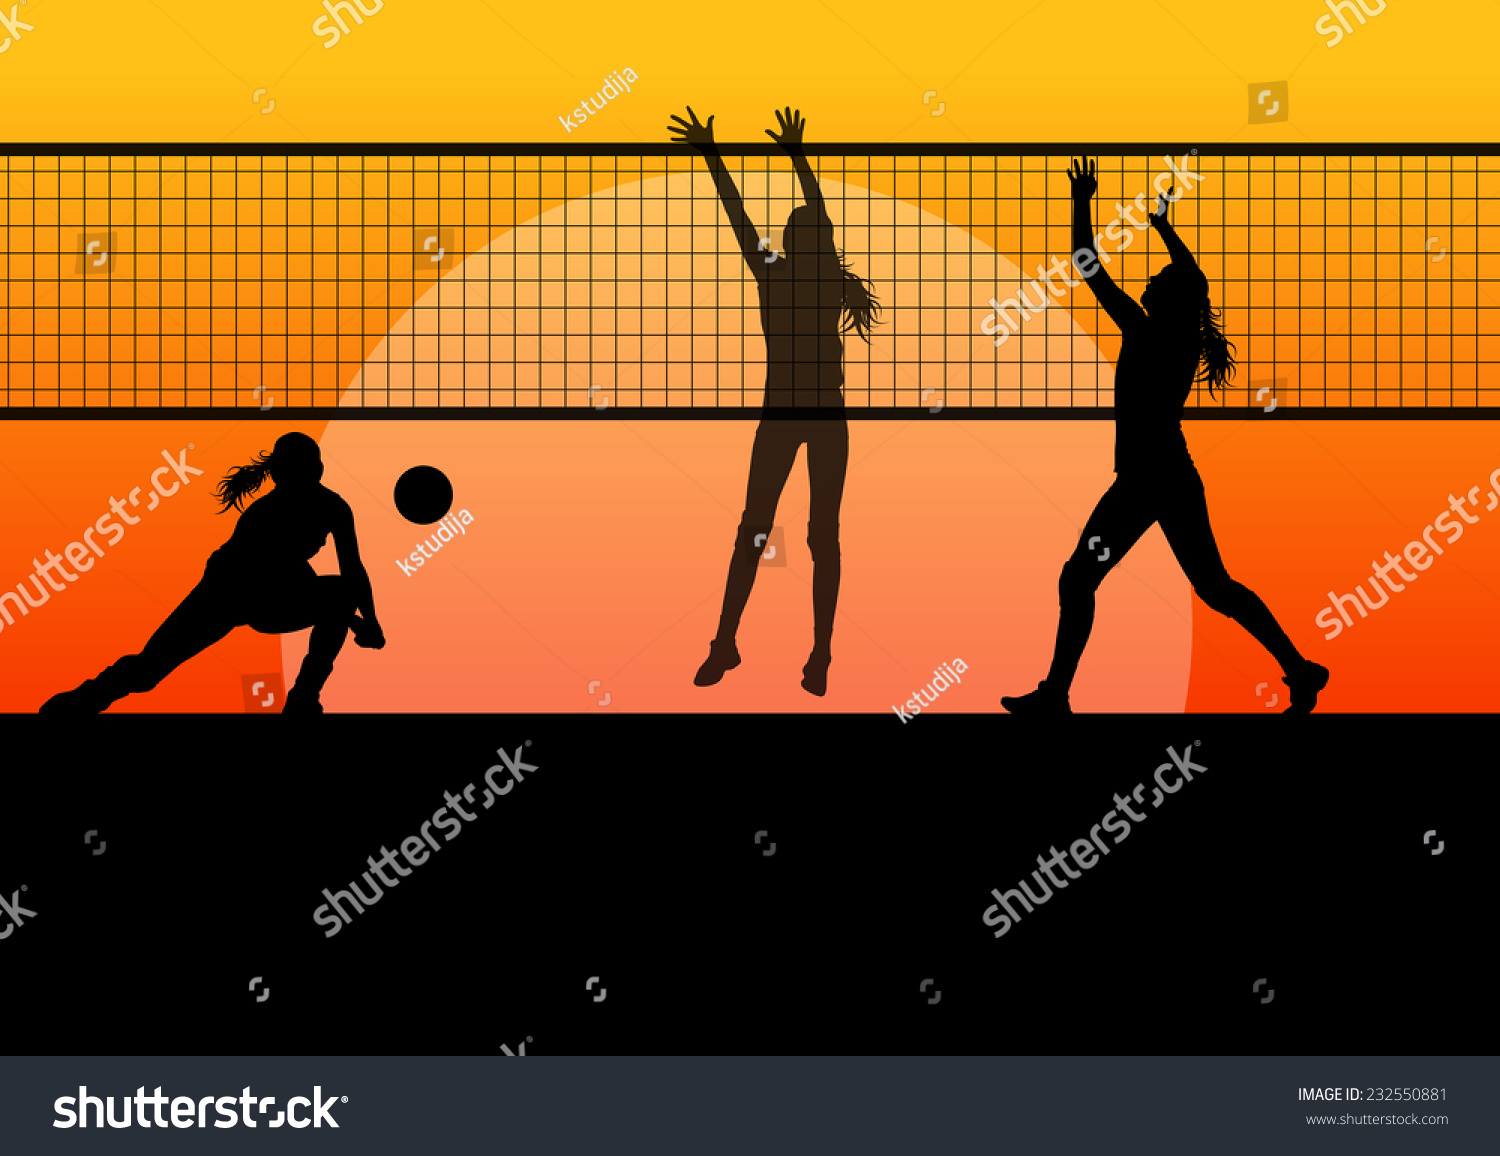 Abstract Design Of A Beach Volleyball Player Vector Image: Beach Volleyball Woman Player Vector Sunset Stock Vector